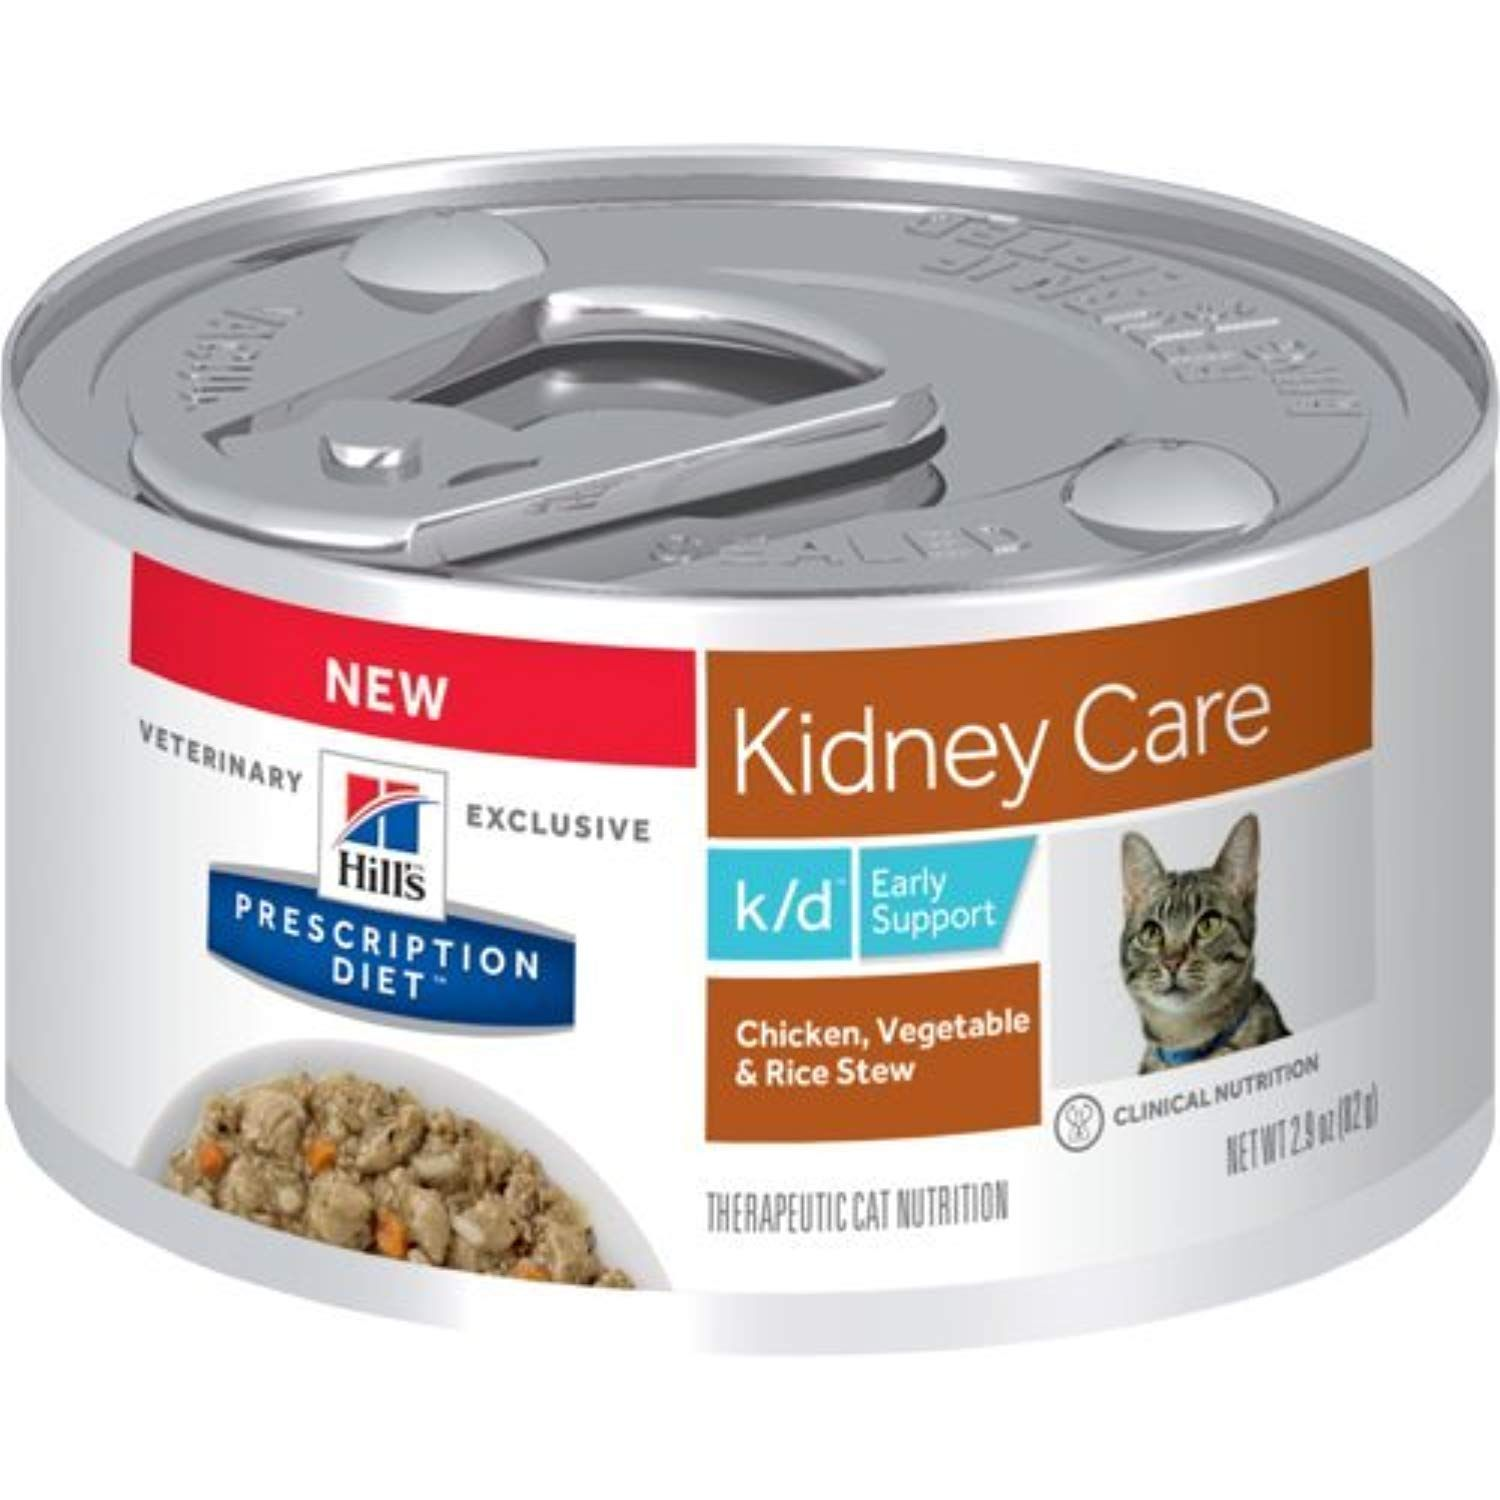 Hill's Prescription Diet k/d Early Support Chicken Canned